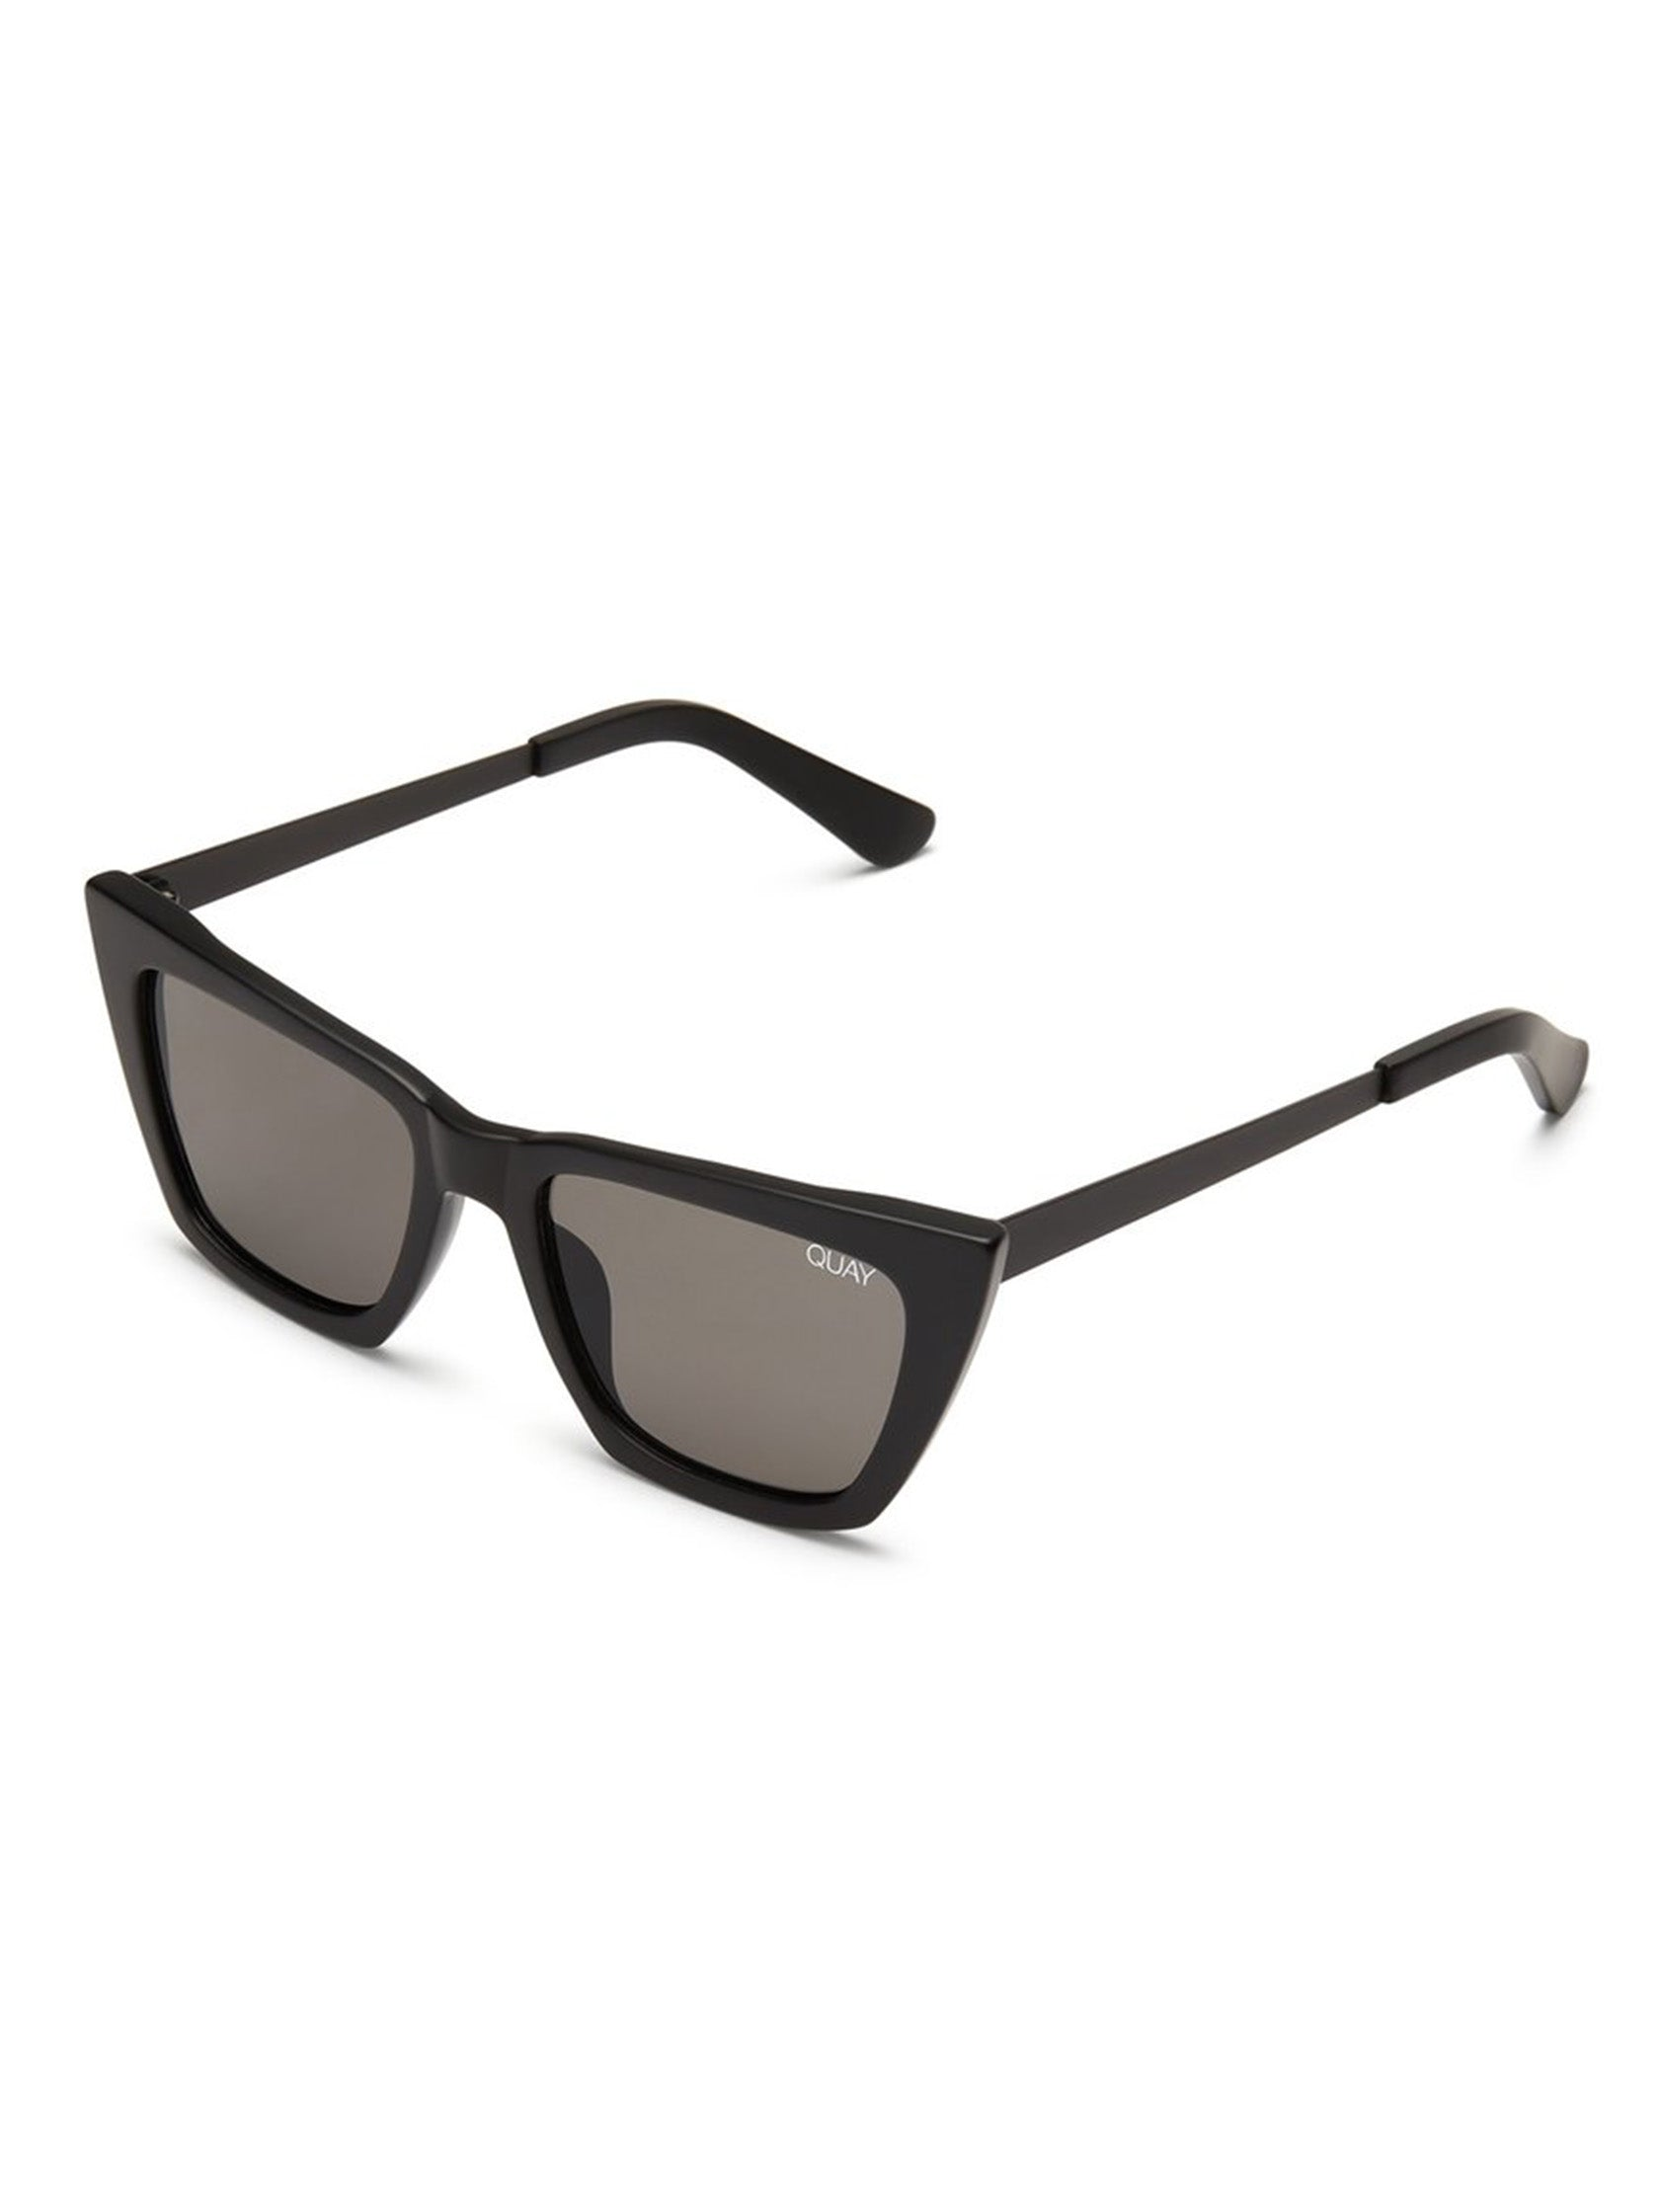 Woman wearing a sunglasses rental from Quay Australia called Don't @ Me Sunglasses